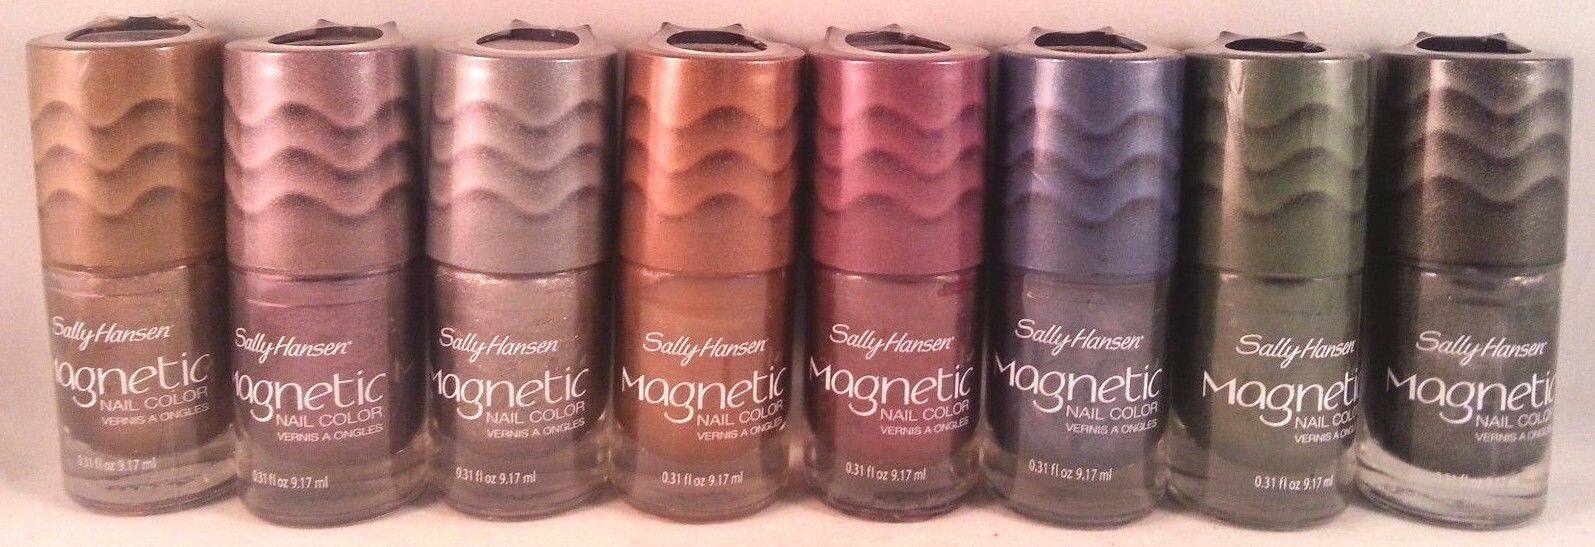 Sally Hansen Nail Polish Magnetic Graphite Gravity 908 | eBay